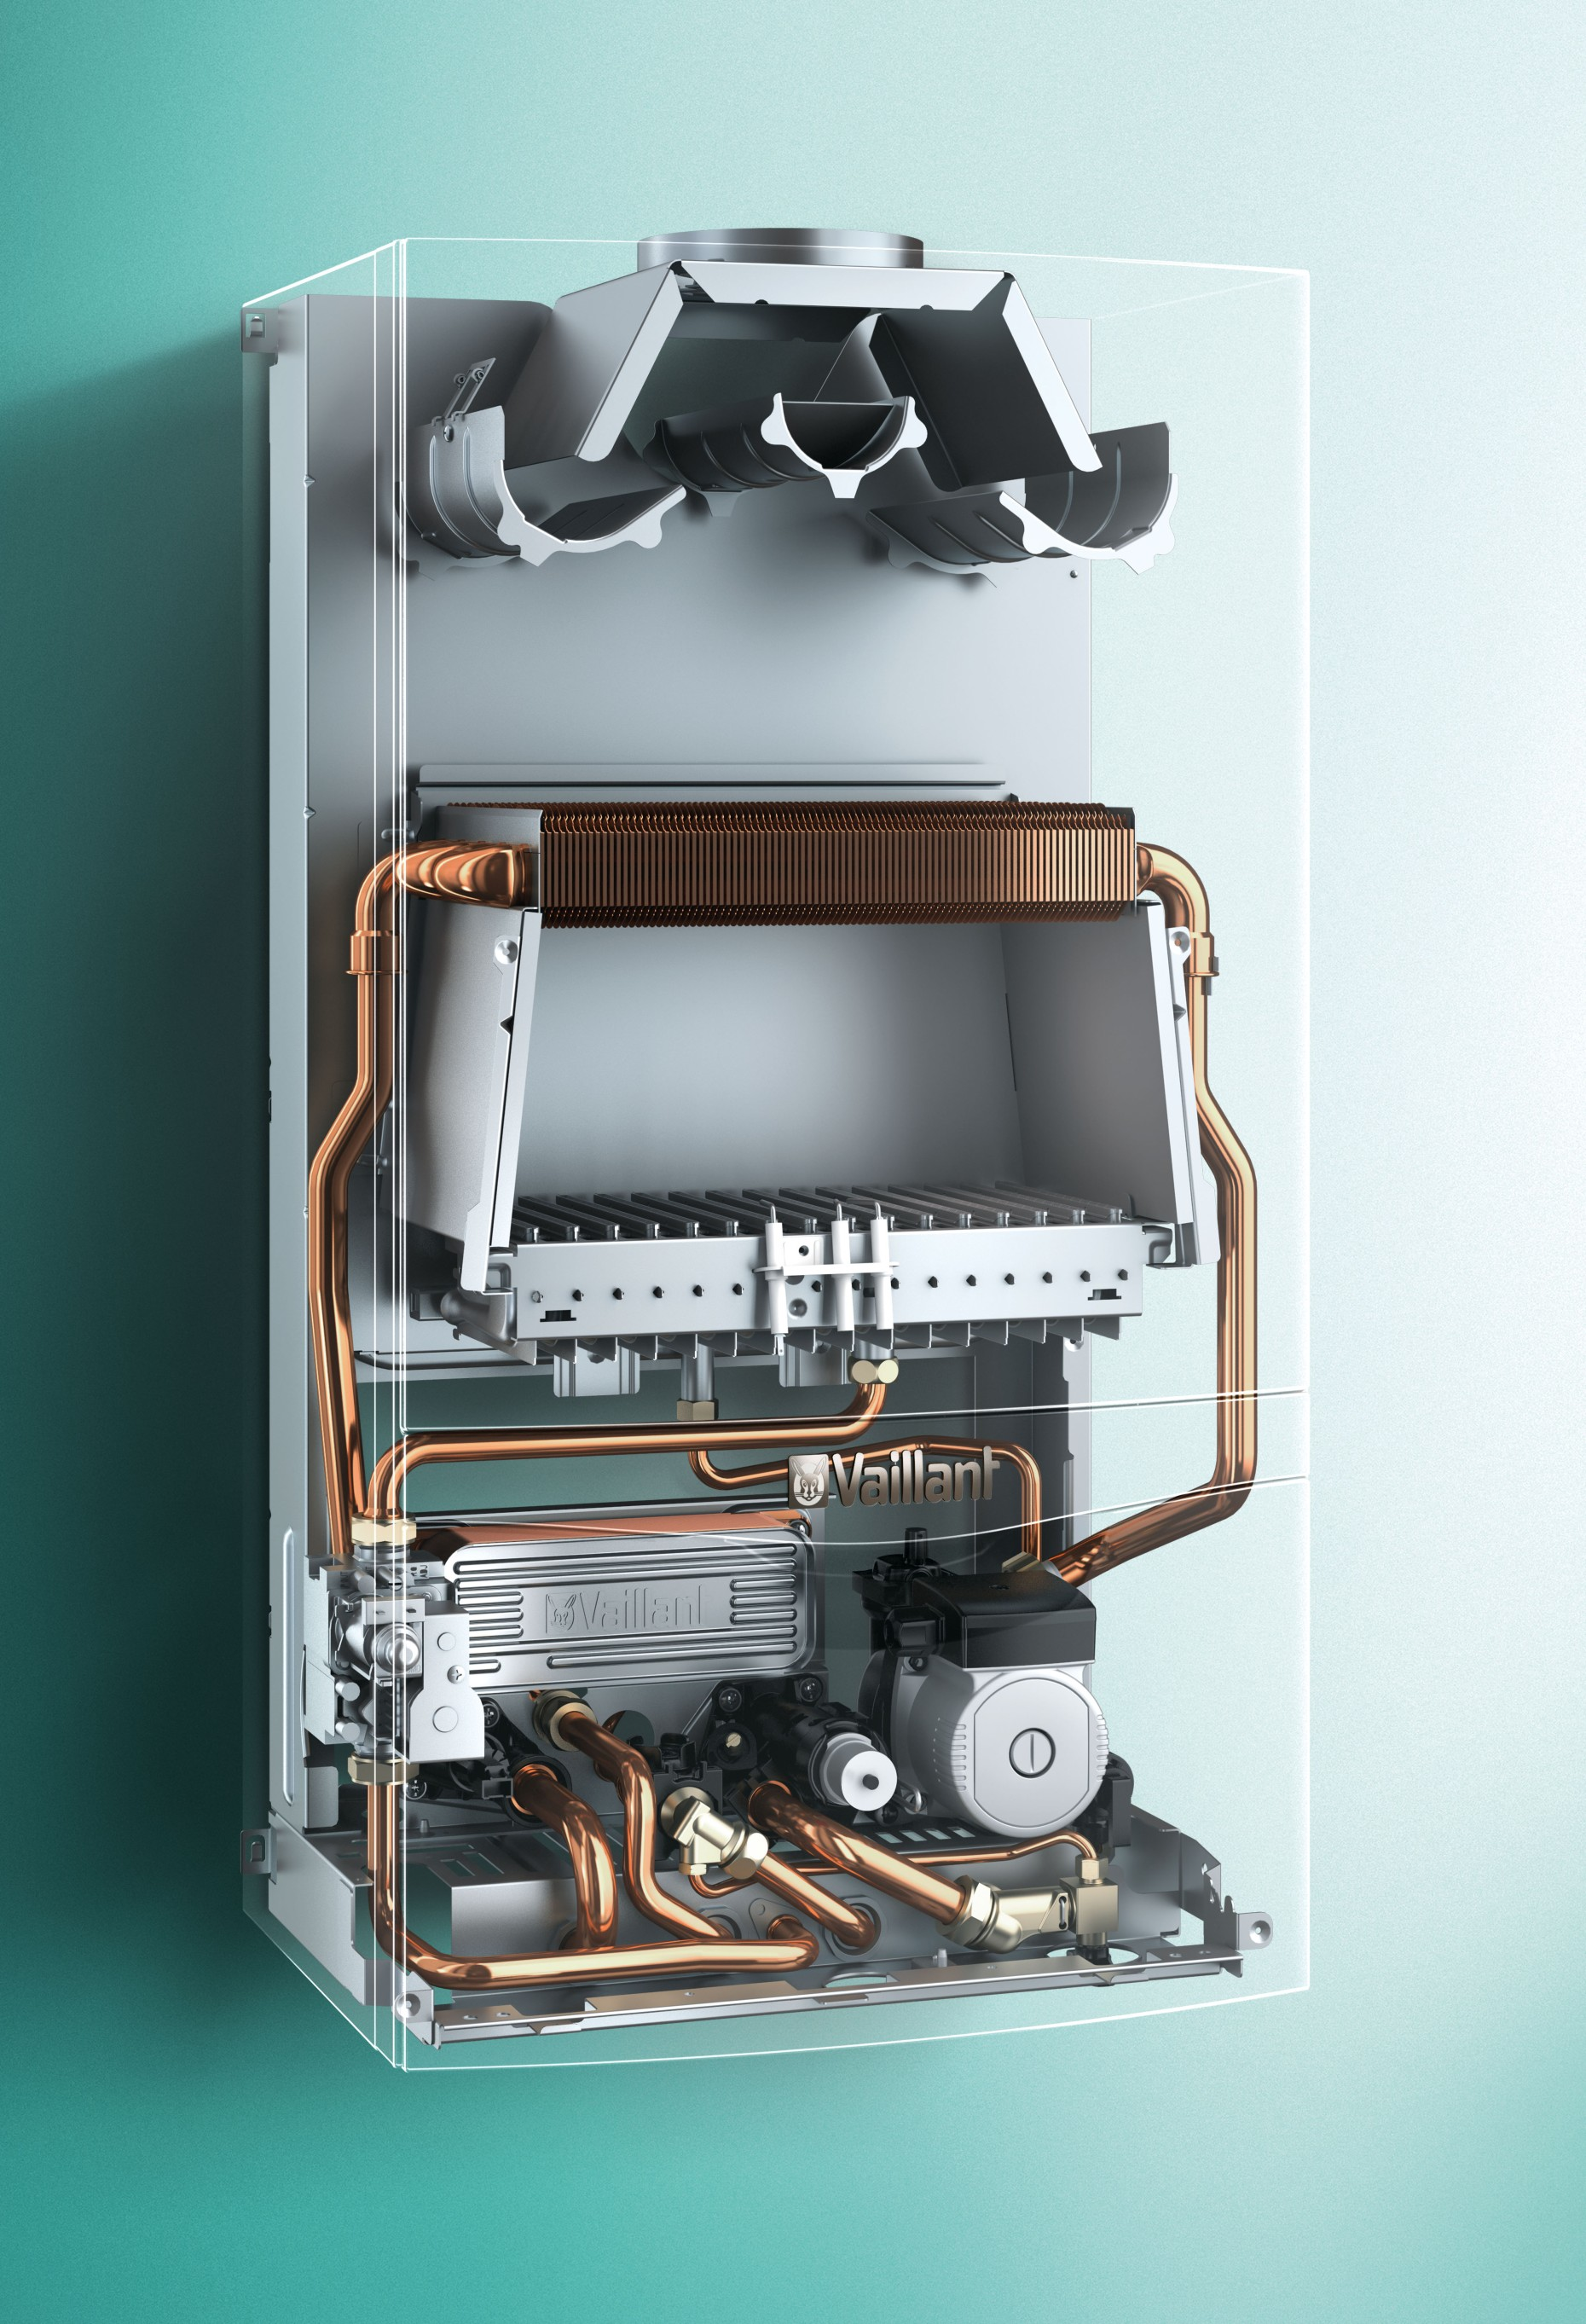 atmoTEC / turboTEC pro - Easier to install - Vaillant